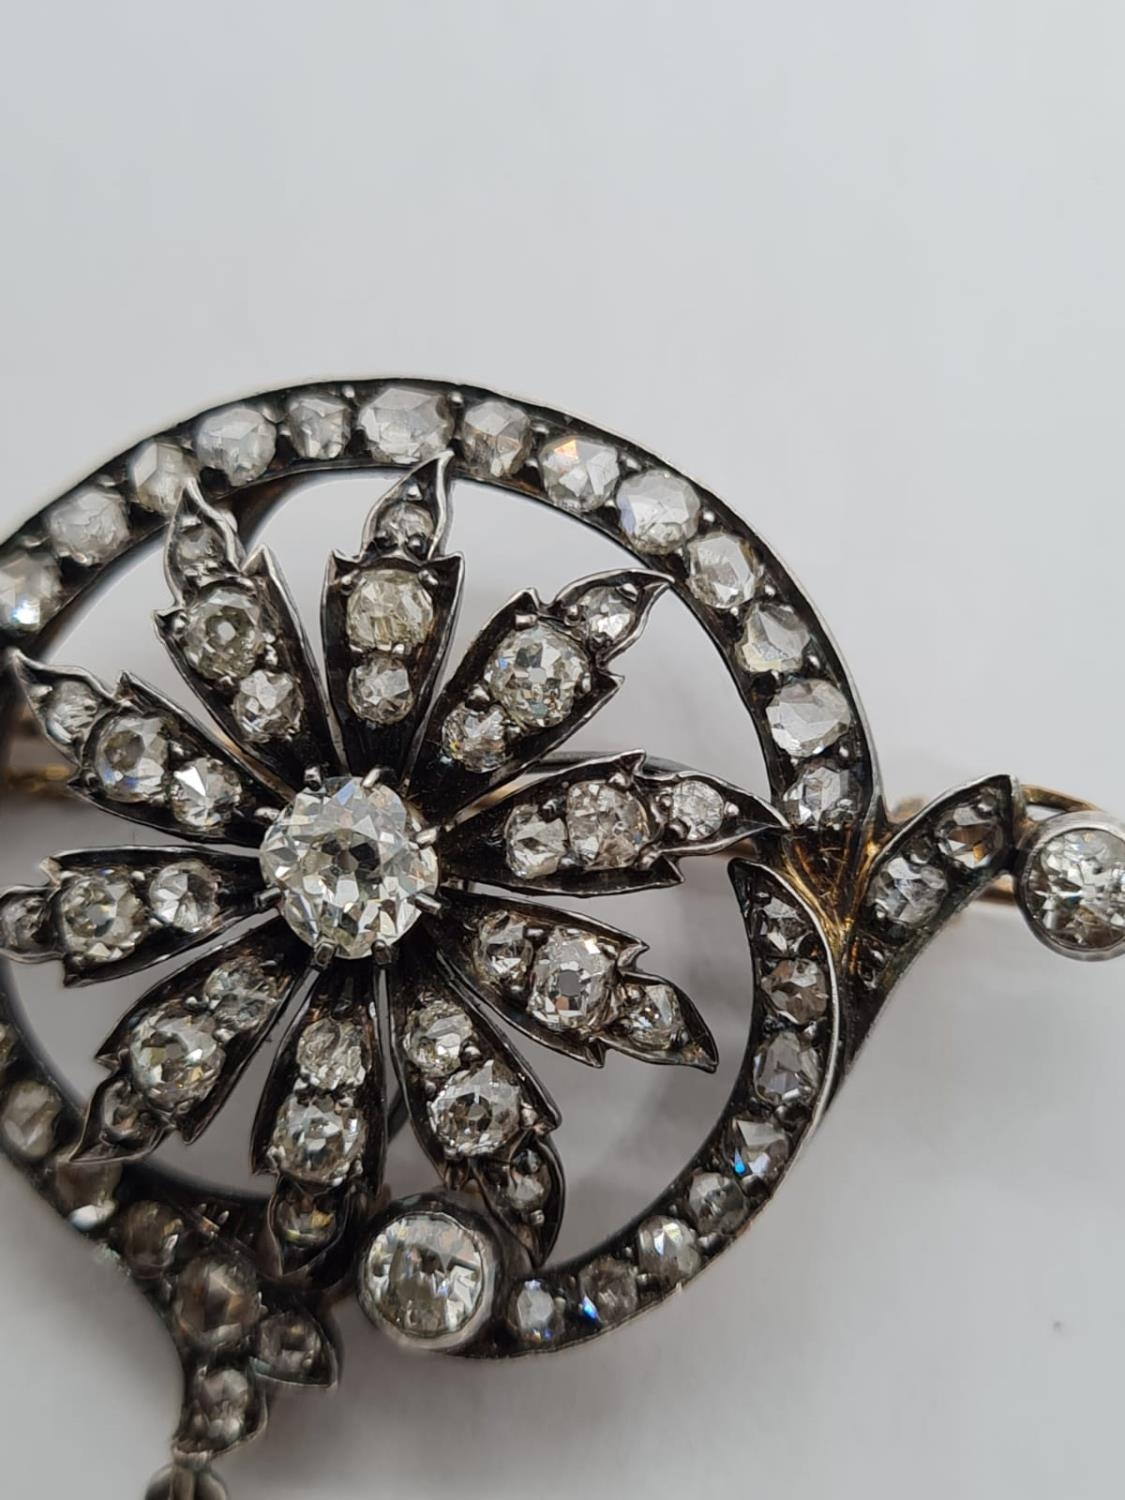 Antique Silver and Gold Diamond BROOCH with 4 ct of top quality Diamonds. 12g 4.5cm width - Image 4 of 5